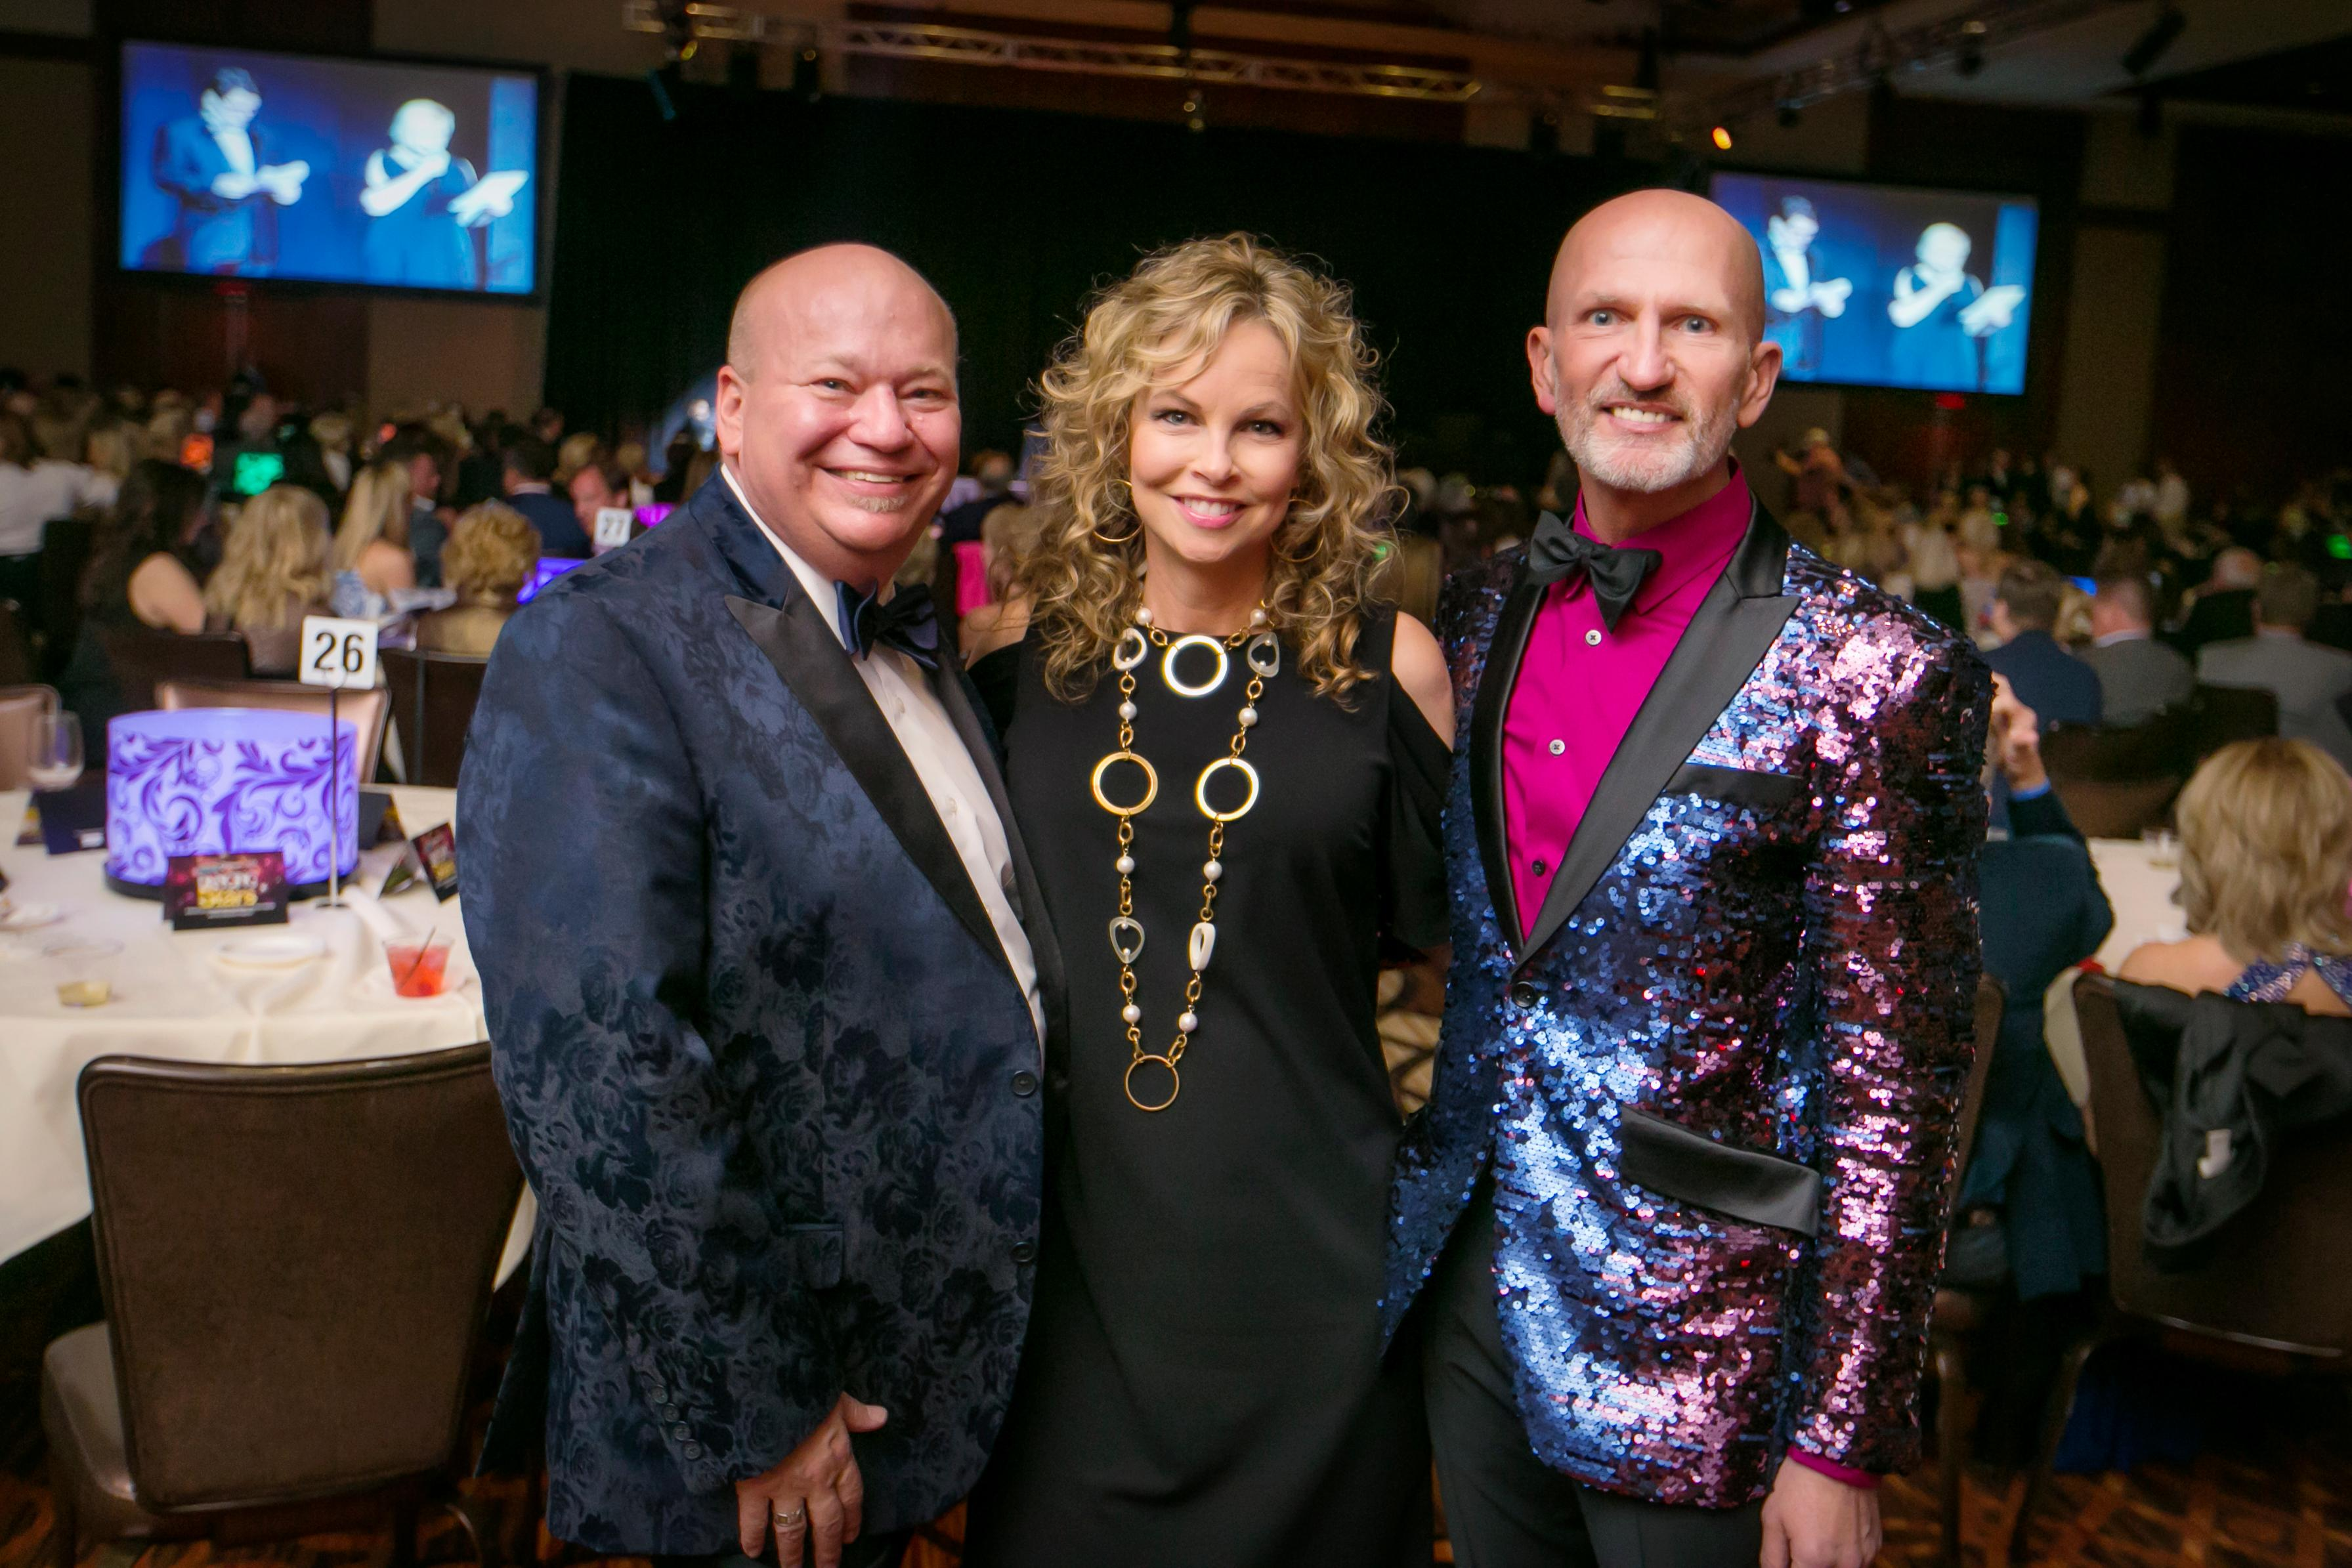 Danny Cravon, Shelli Wineland, and Joe Rigotti / Image: Mike Bresnen Photography